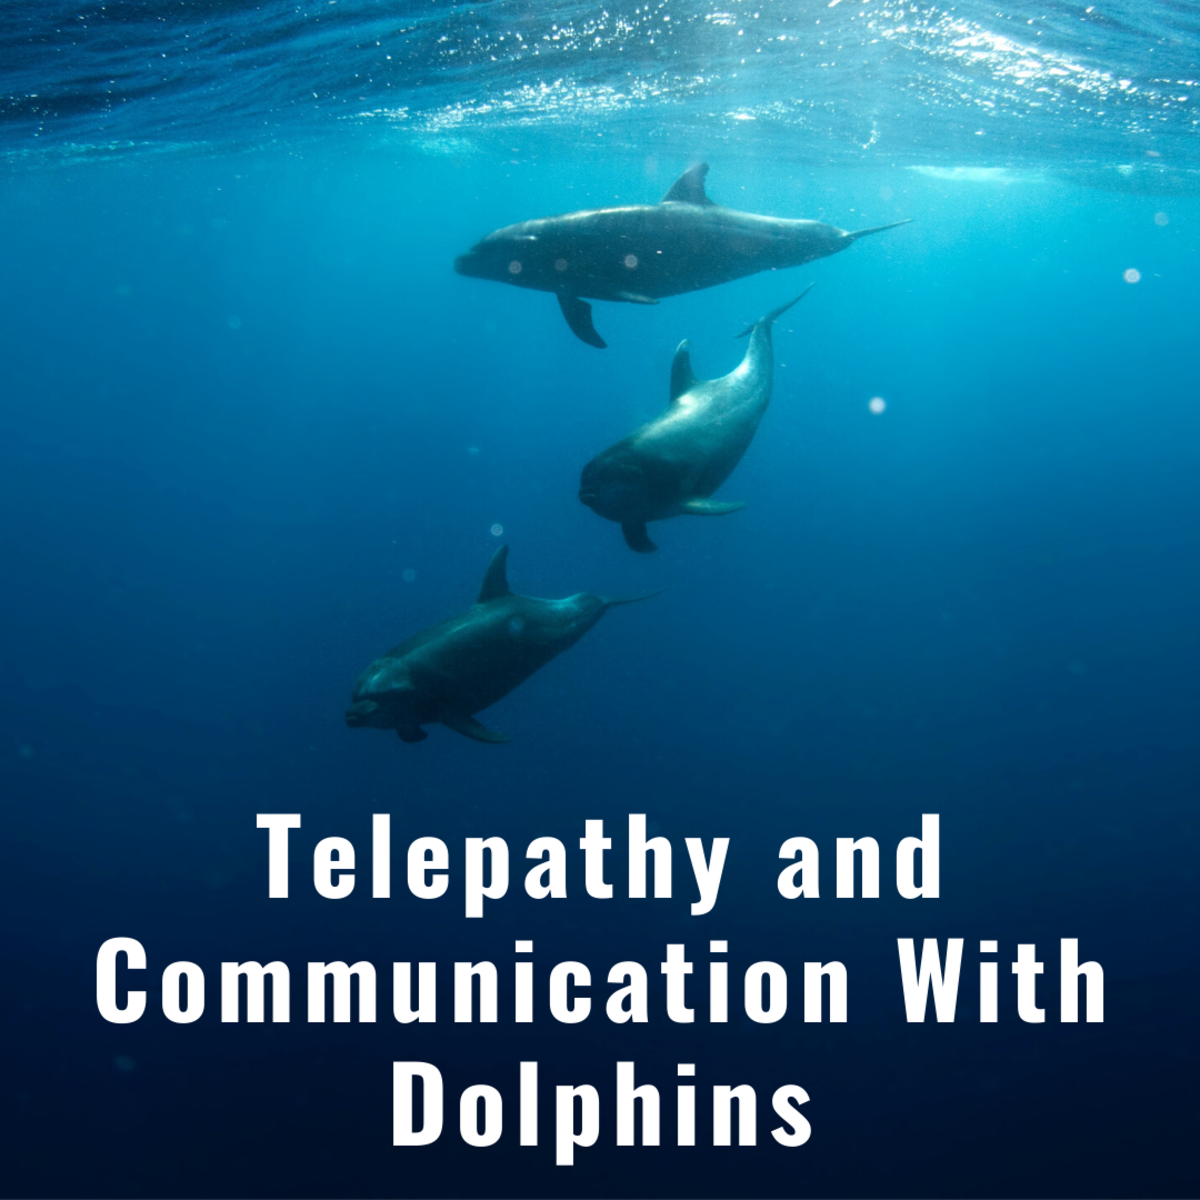 Read on to learn about a personal experience that led to my experimentation with telepathy and dolphins.